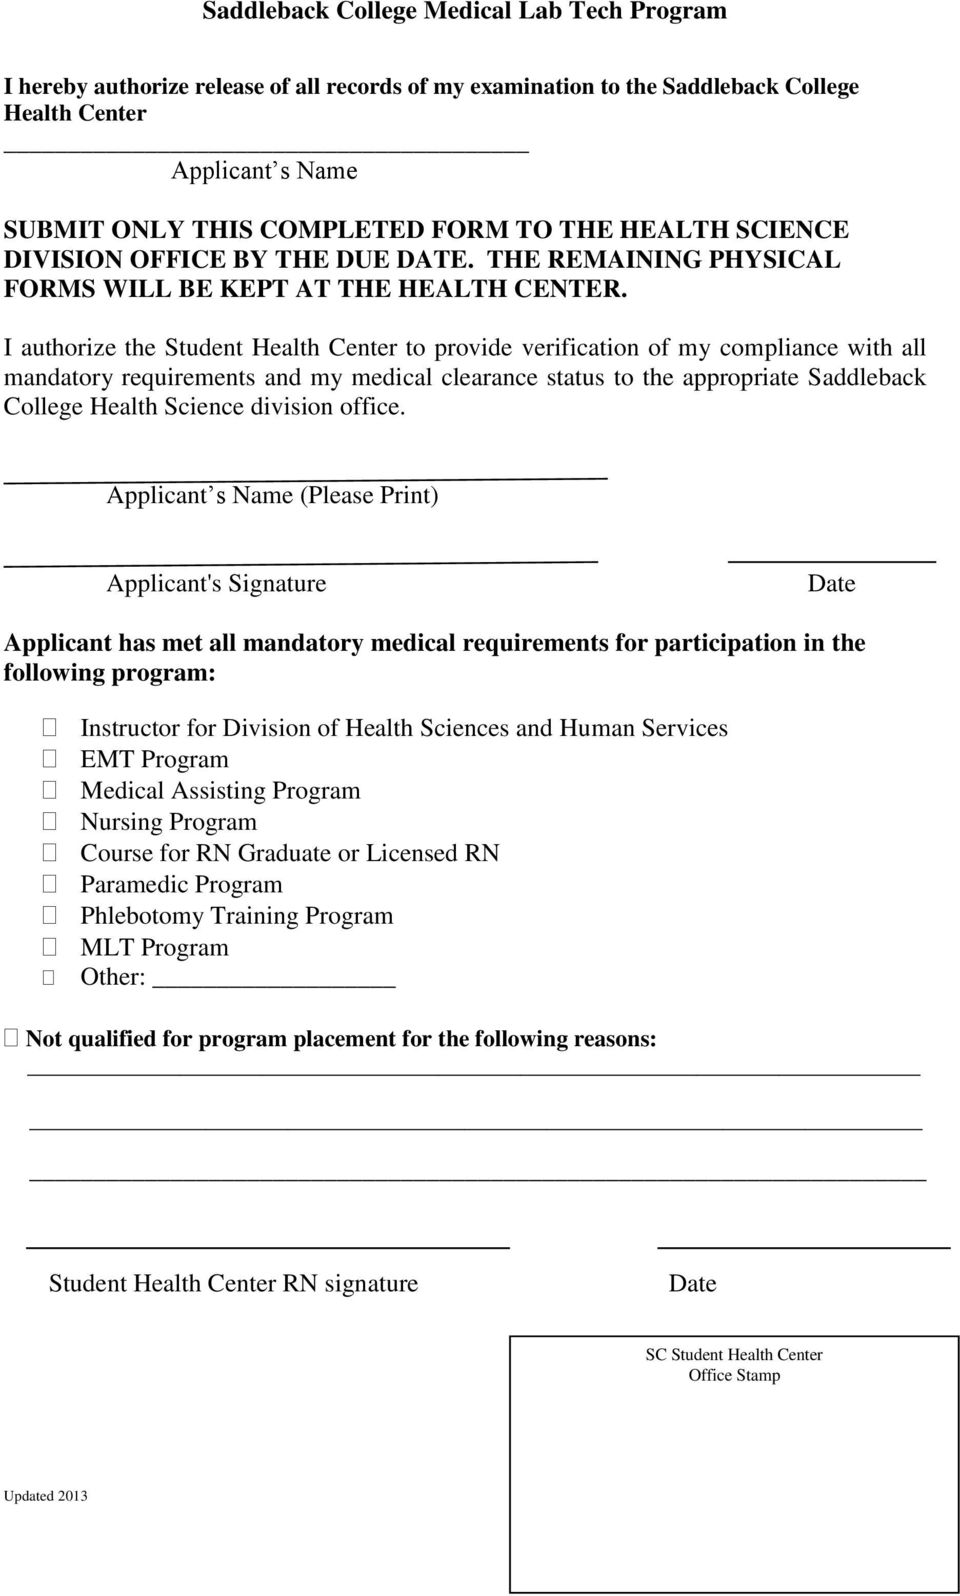 I authorize the Student Health Center to provide verification of my compliance with all mandatory requirements and my medical clearance status to the appropriate Saddleback College Health Science